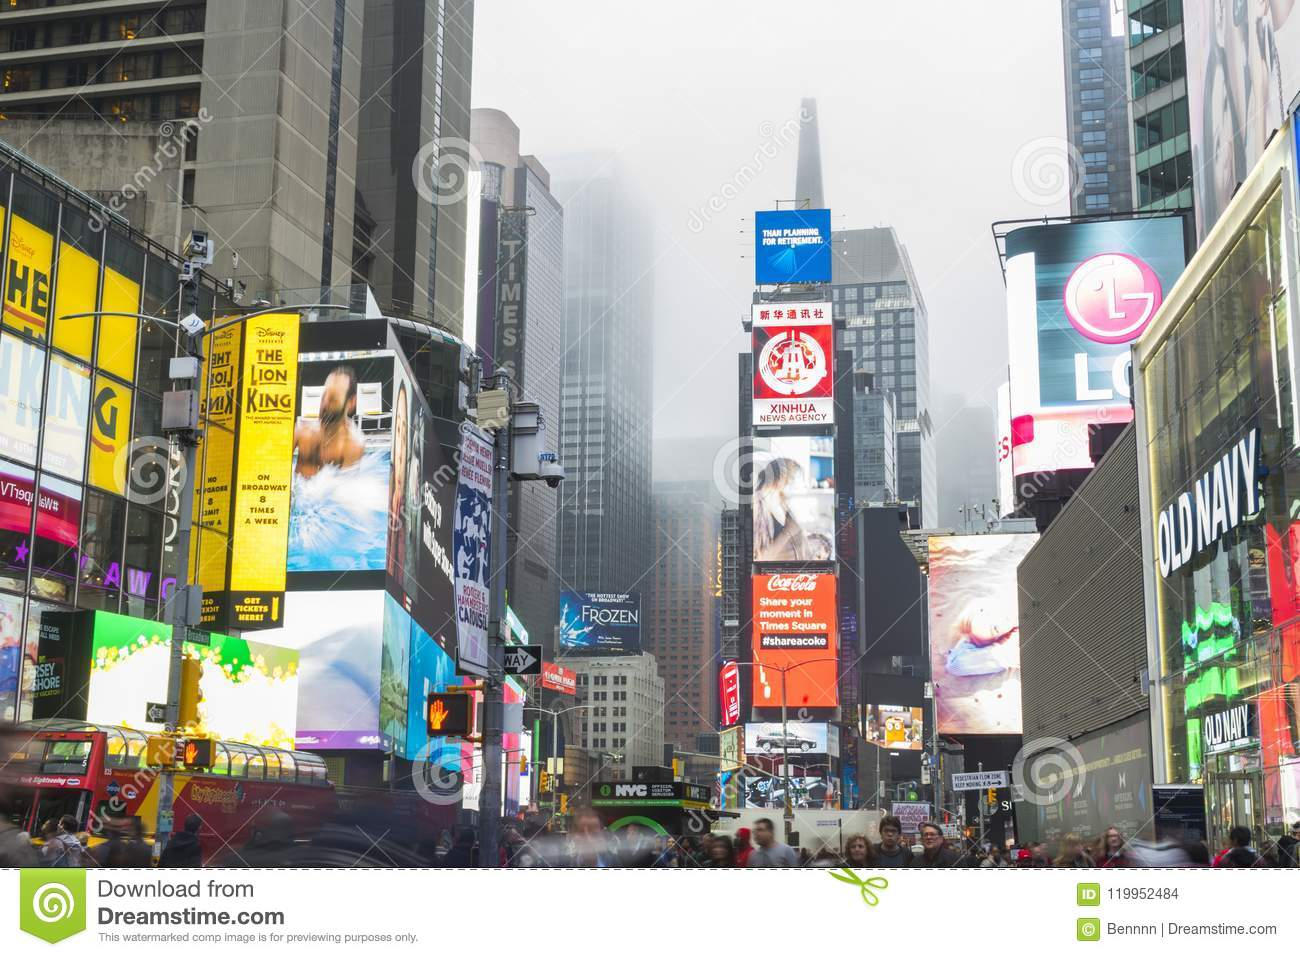 Crowded of tourist walking in Times Square with LED signs